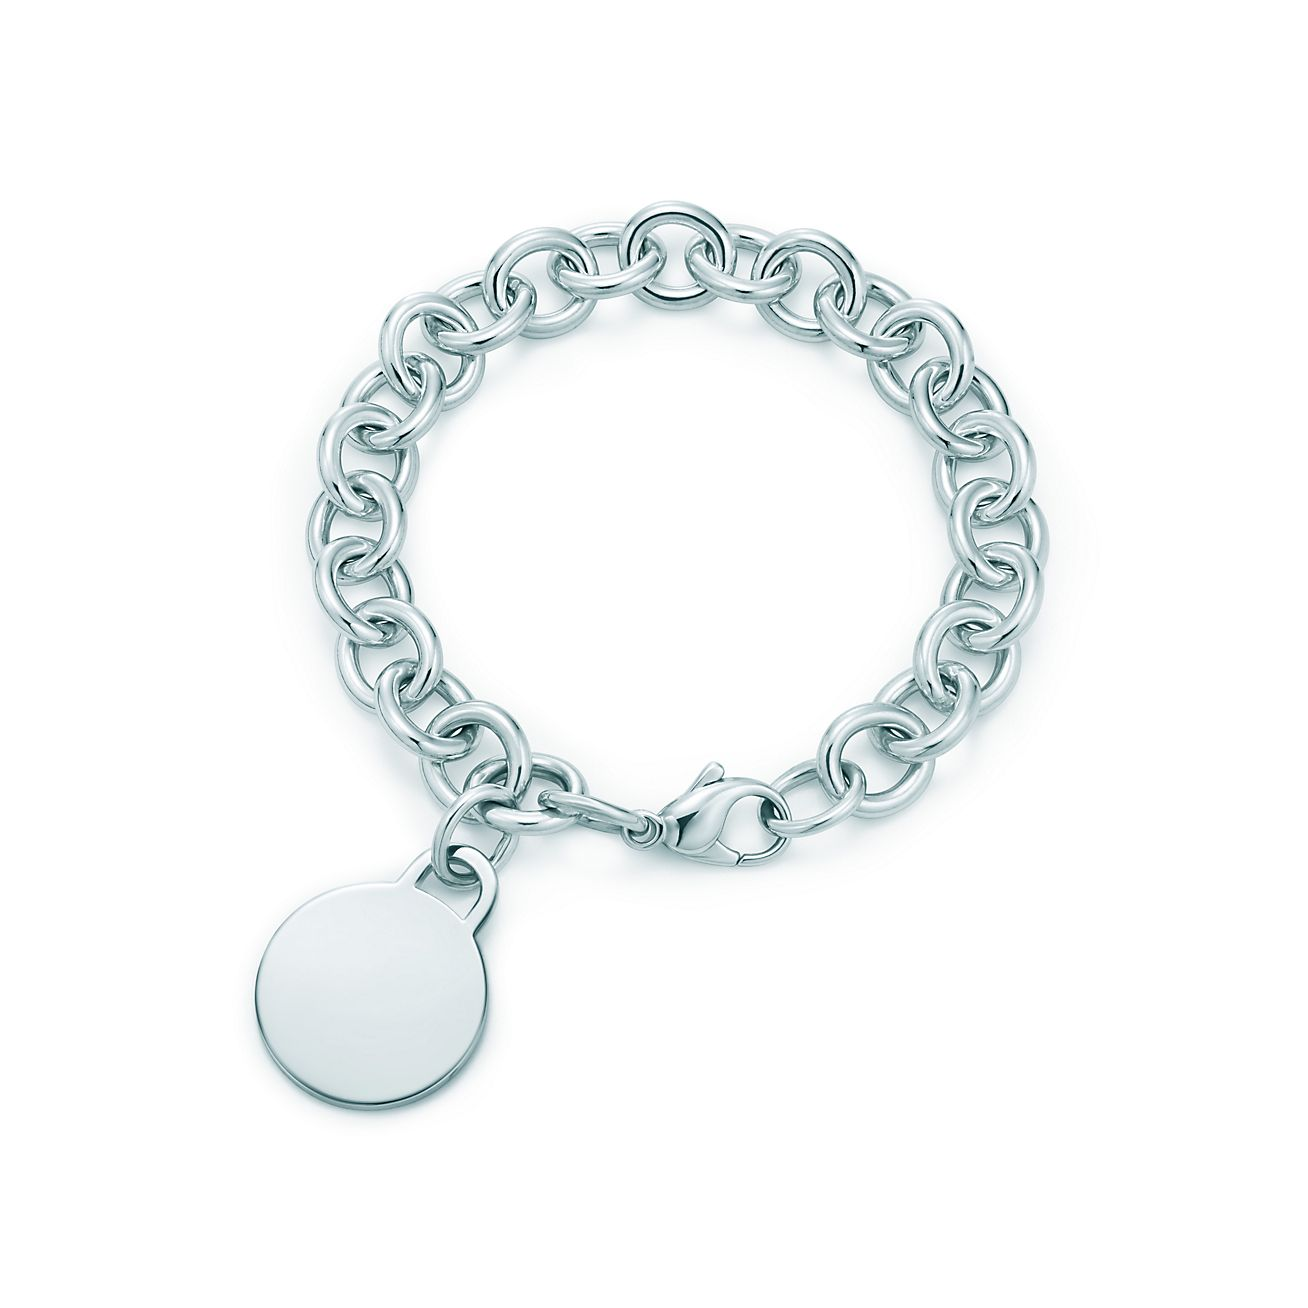 Explore Engraved Business Gifts Round Tag Charm Bracelet 28684037 Tiffany Charms For Sale